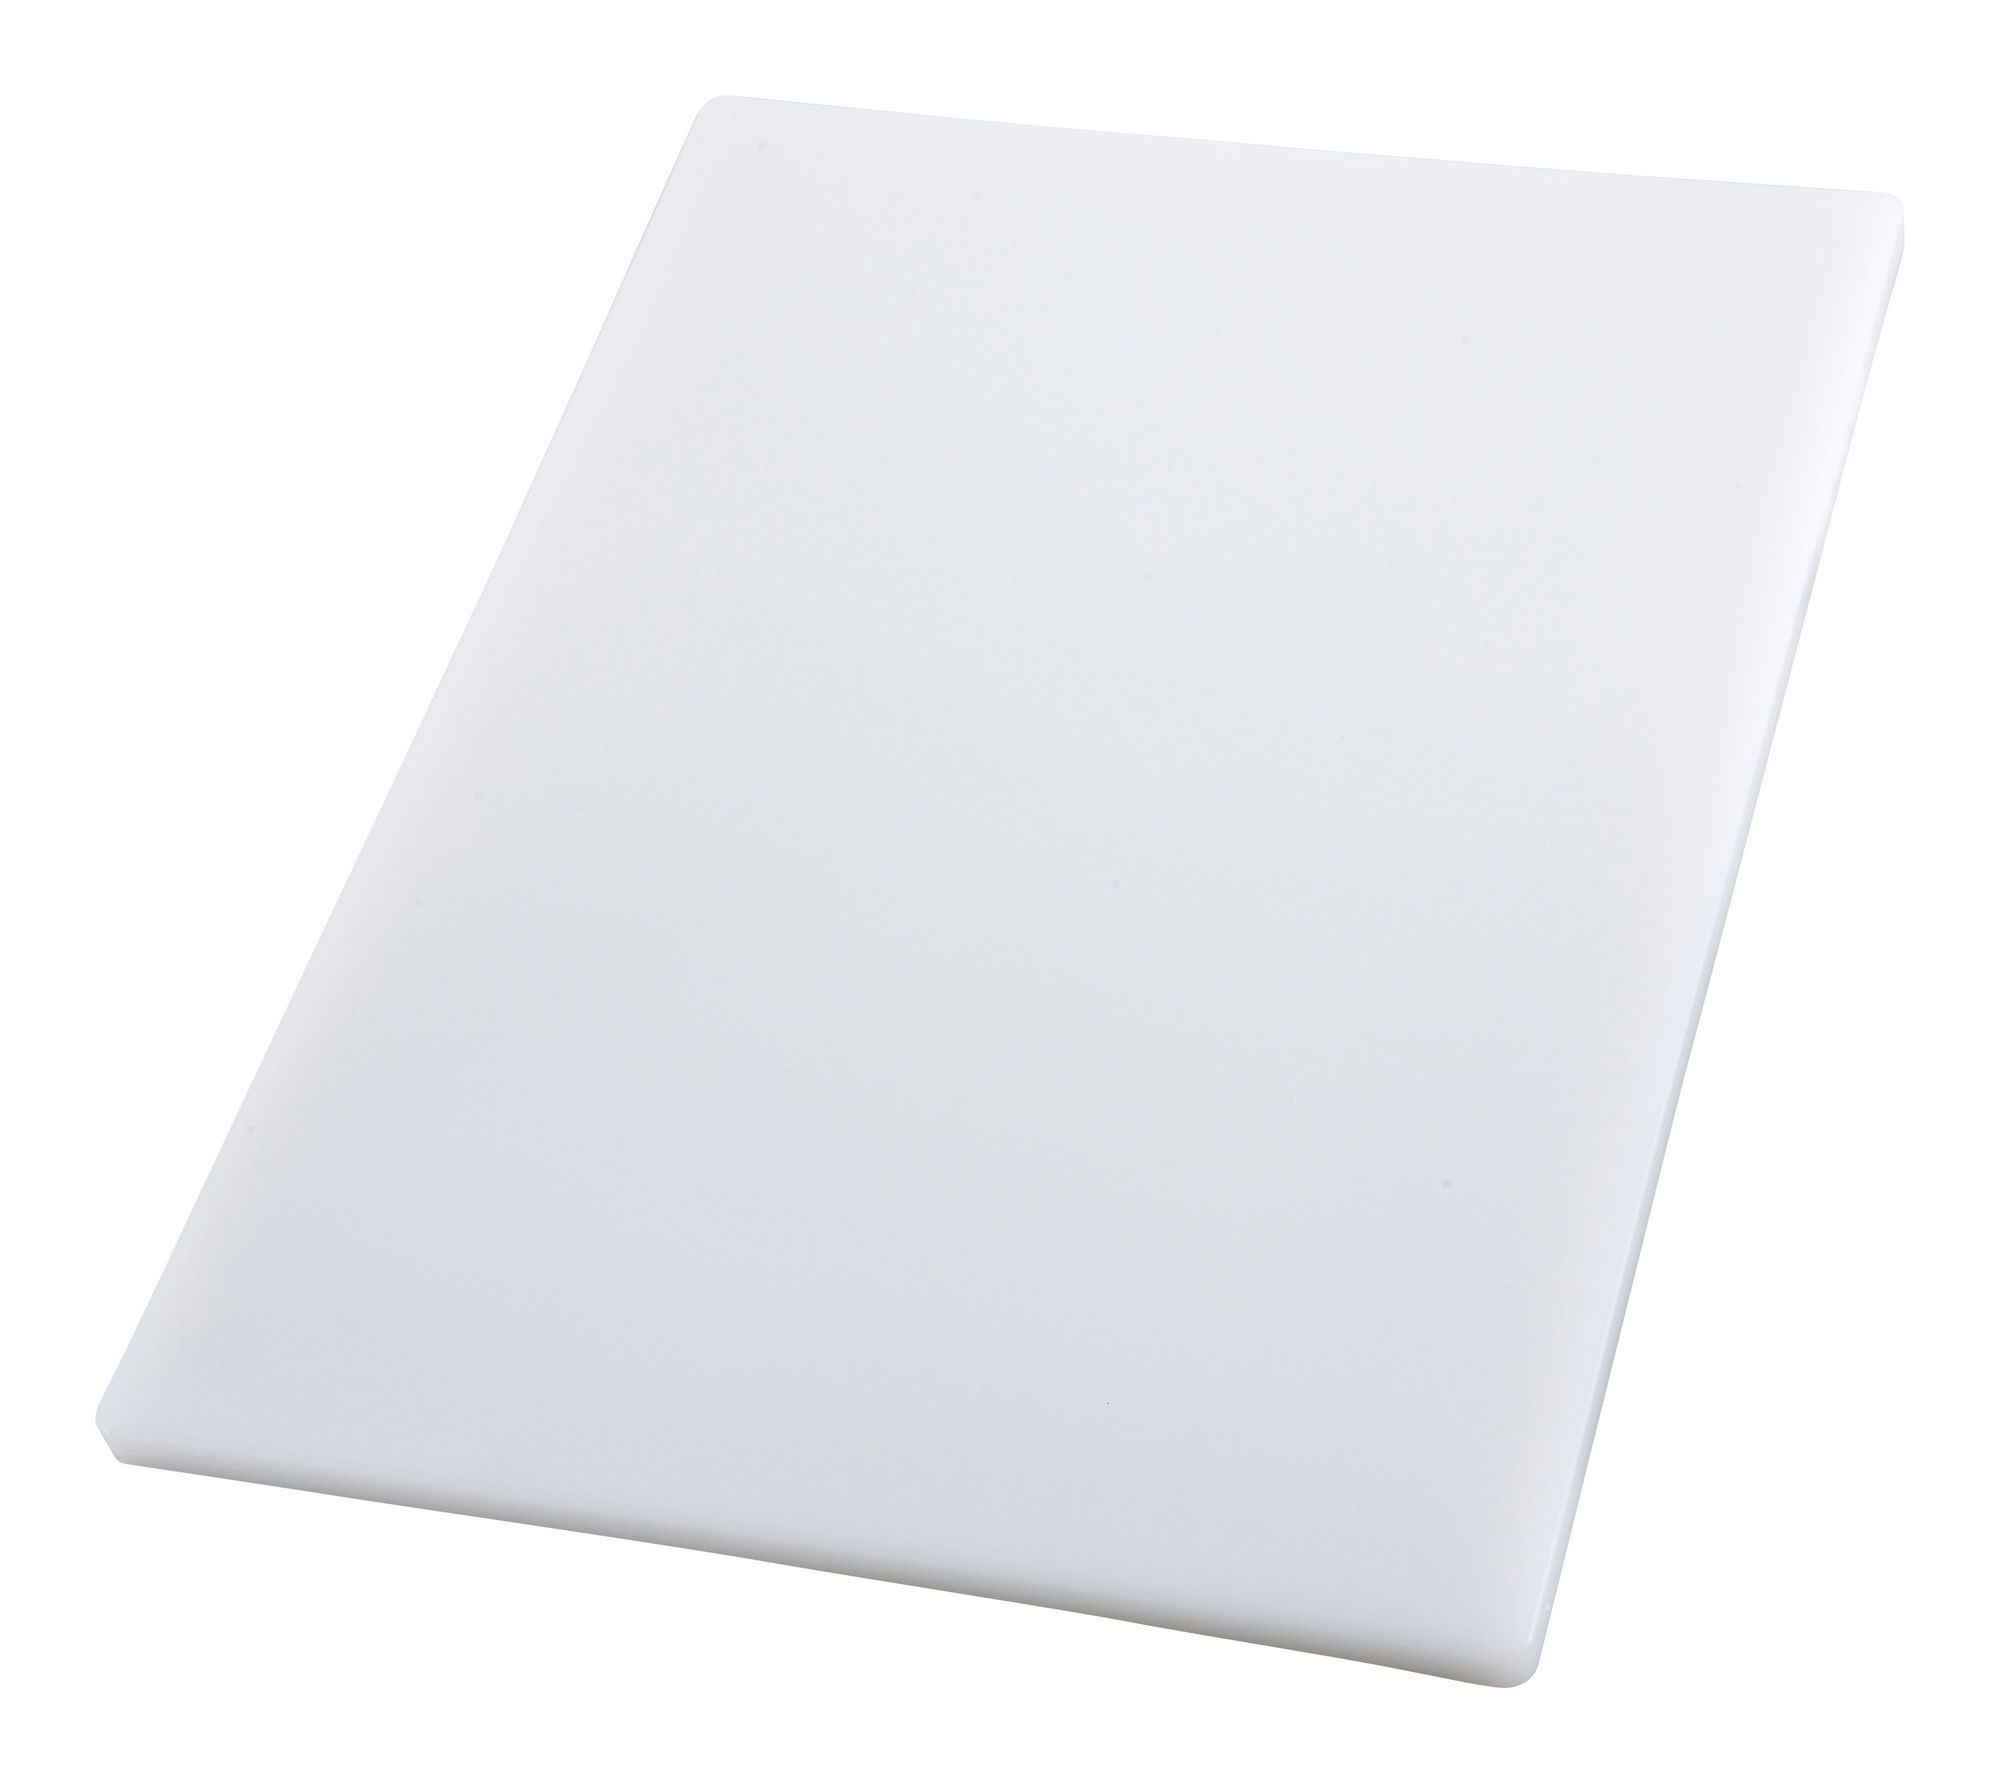 Thick White Cutting Board - 12 X 18 X 3/4